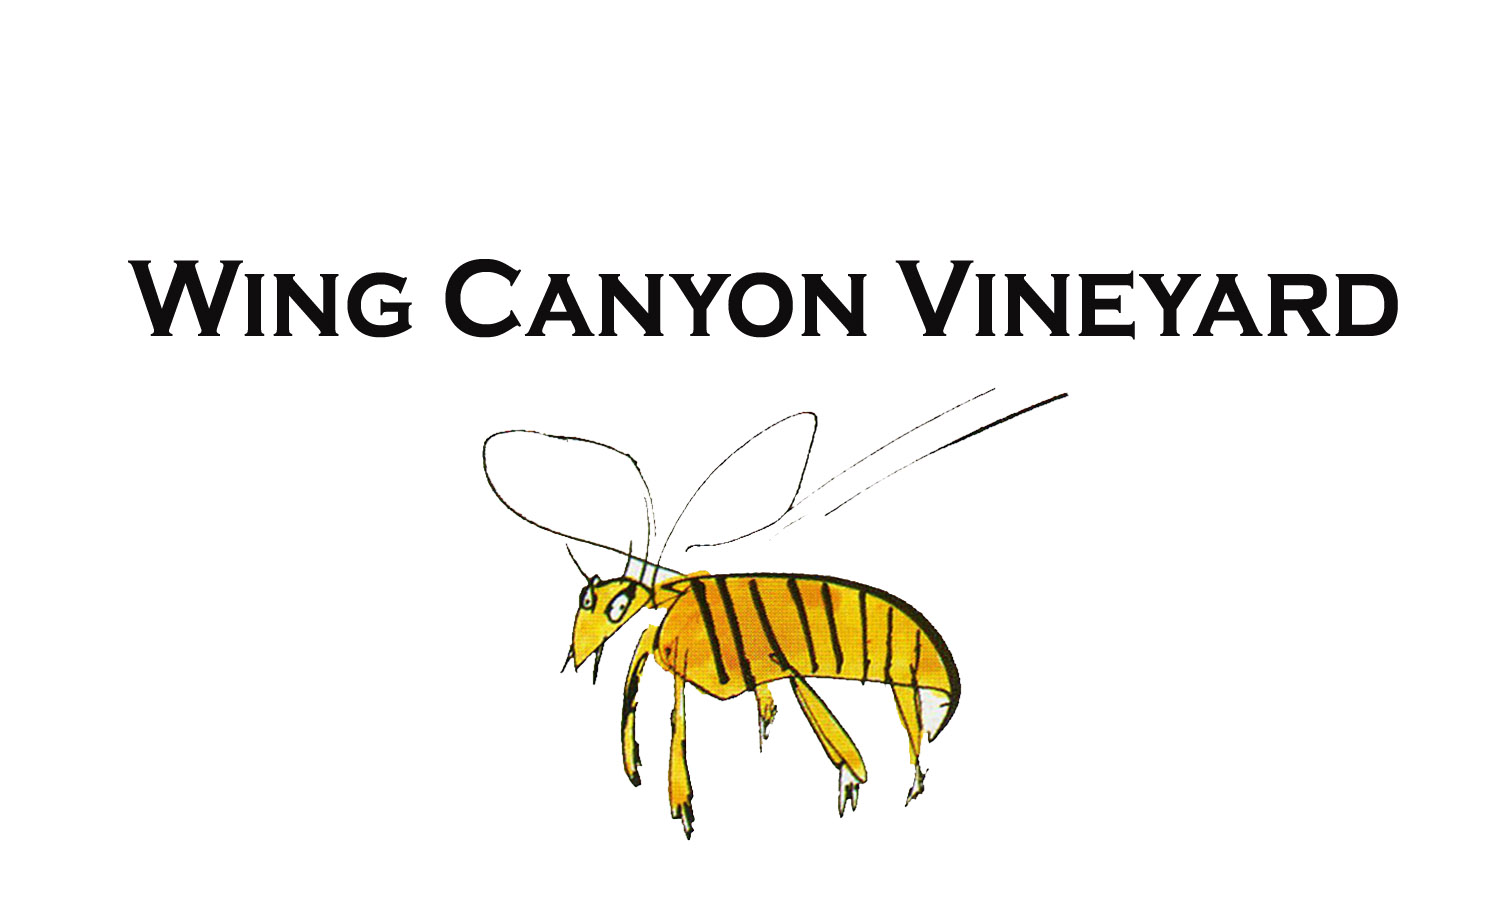 Wing Canyon Vineyard